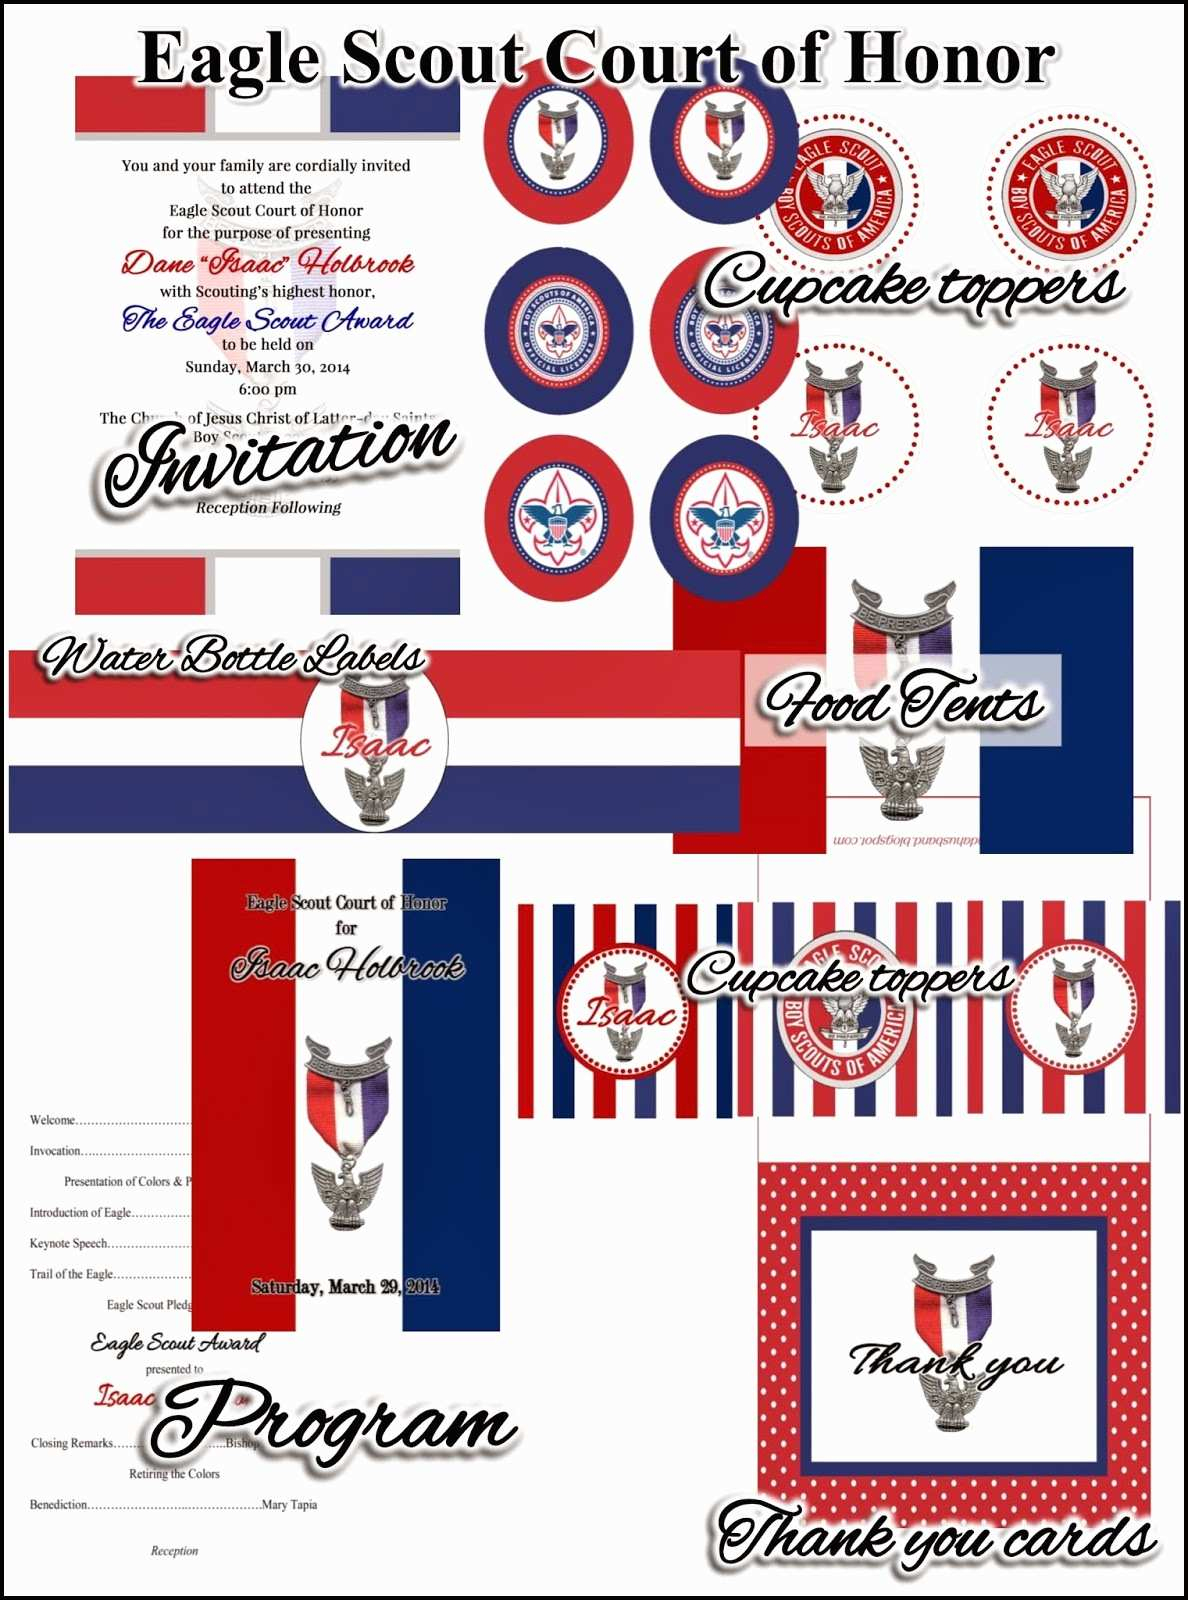 Eagle Scout Cards Free Printable New Printable Eagle Scout - Free Printable Eagle Scout Thank You Cards